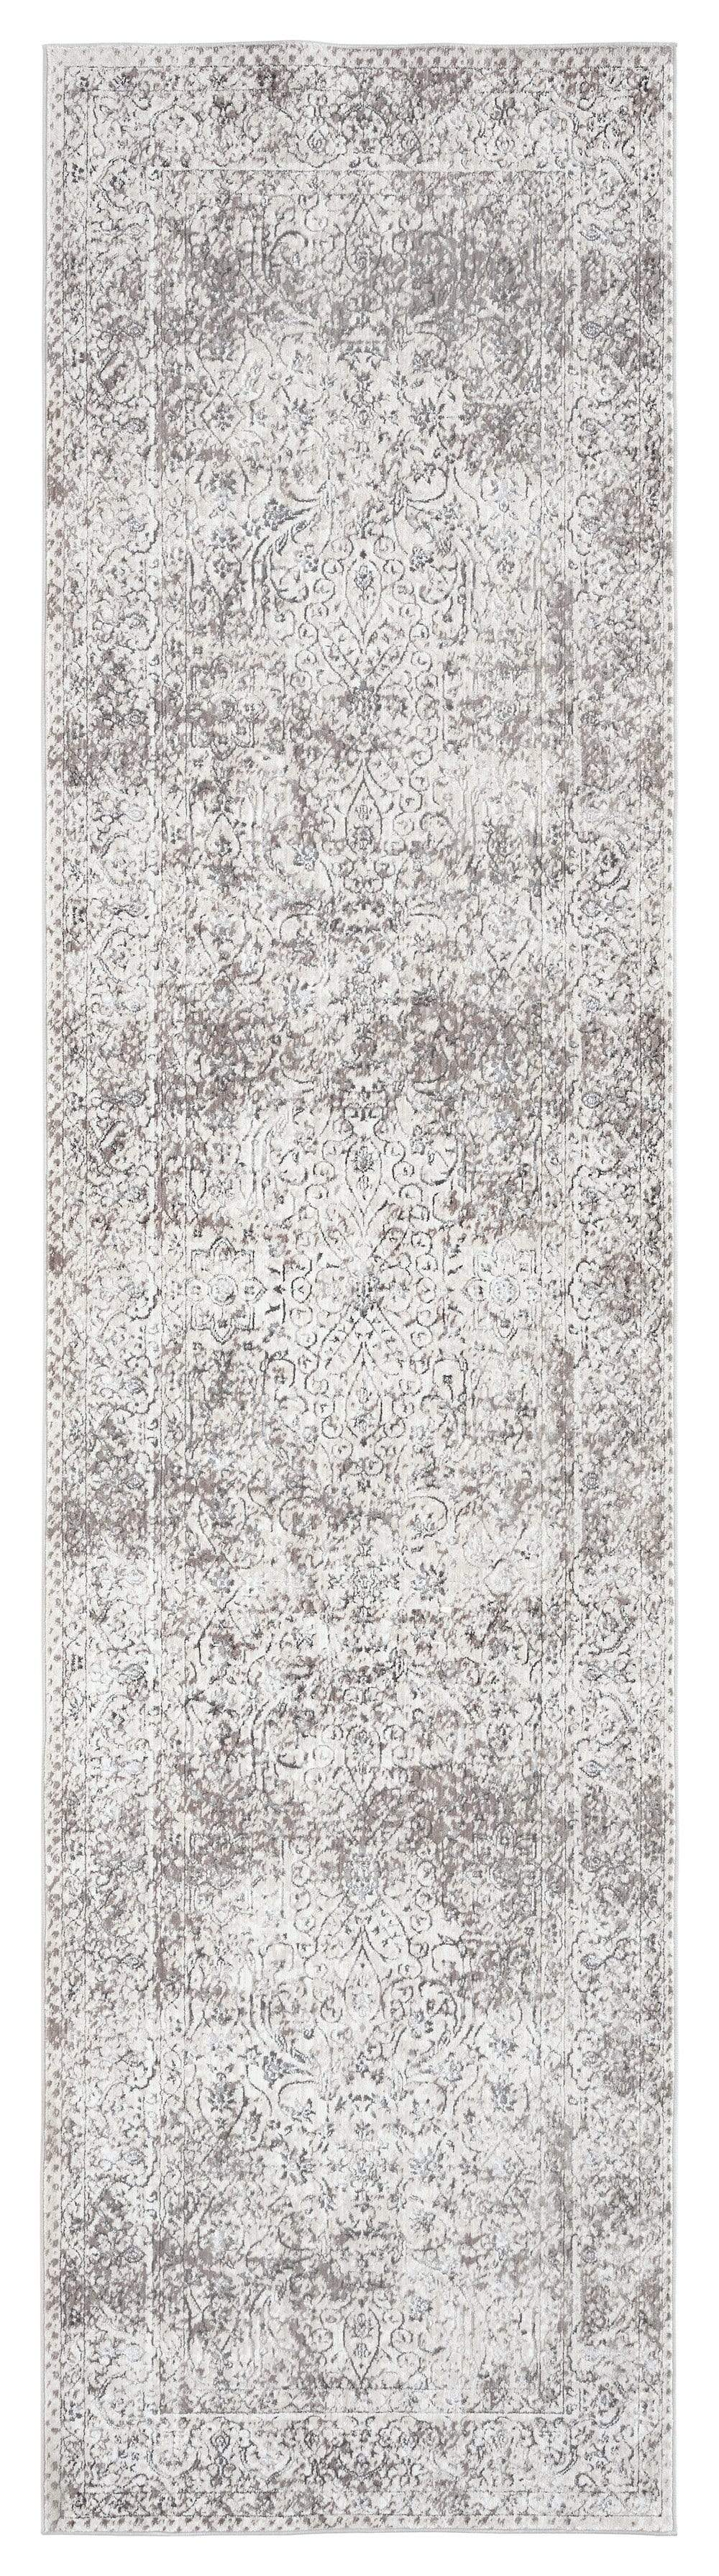 Winona Cream Brown and Silver Grey Traditional Floral Runner Rug